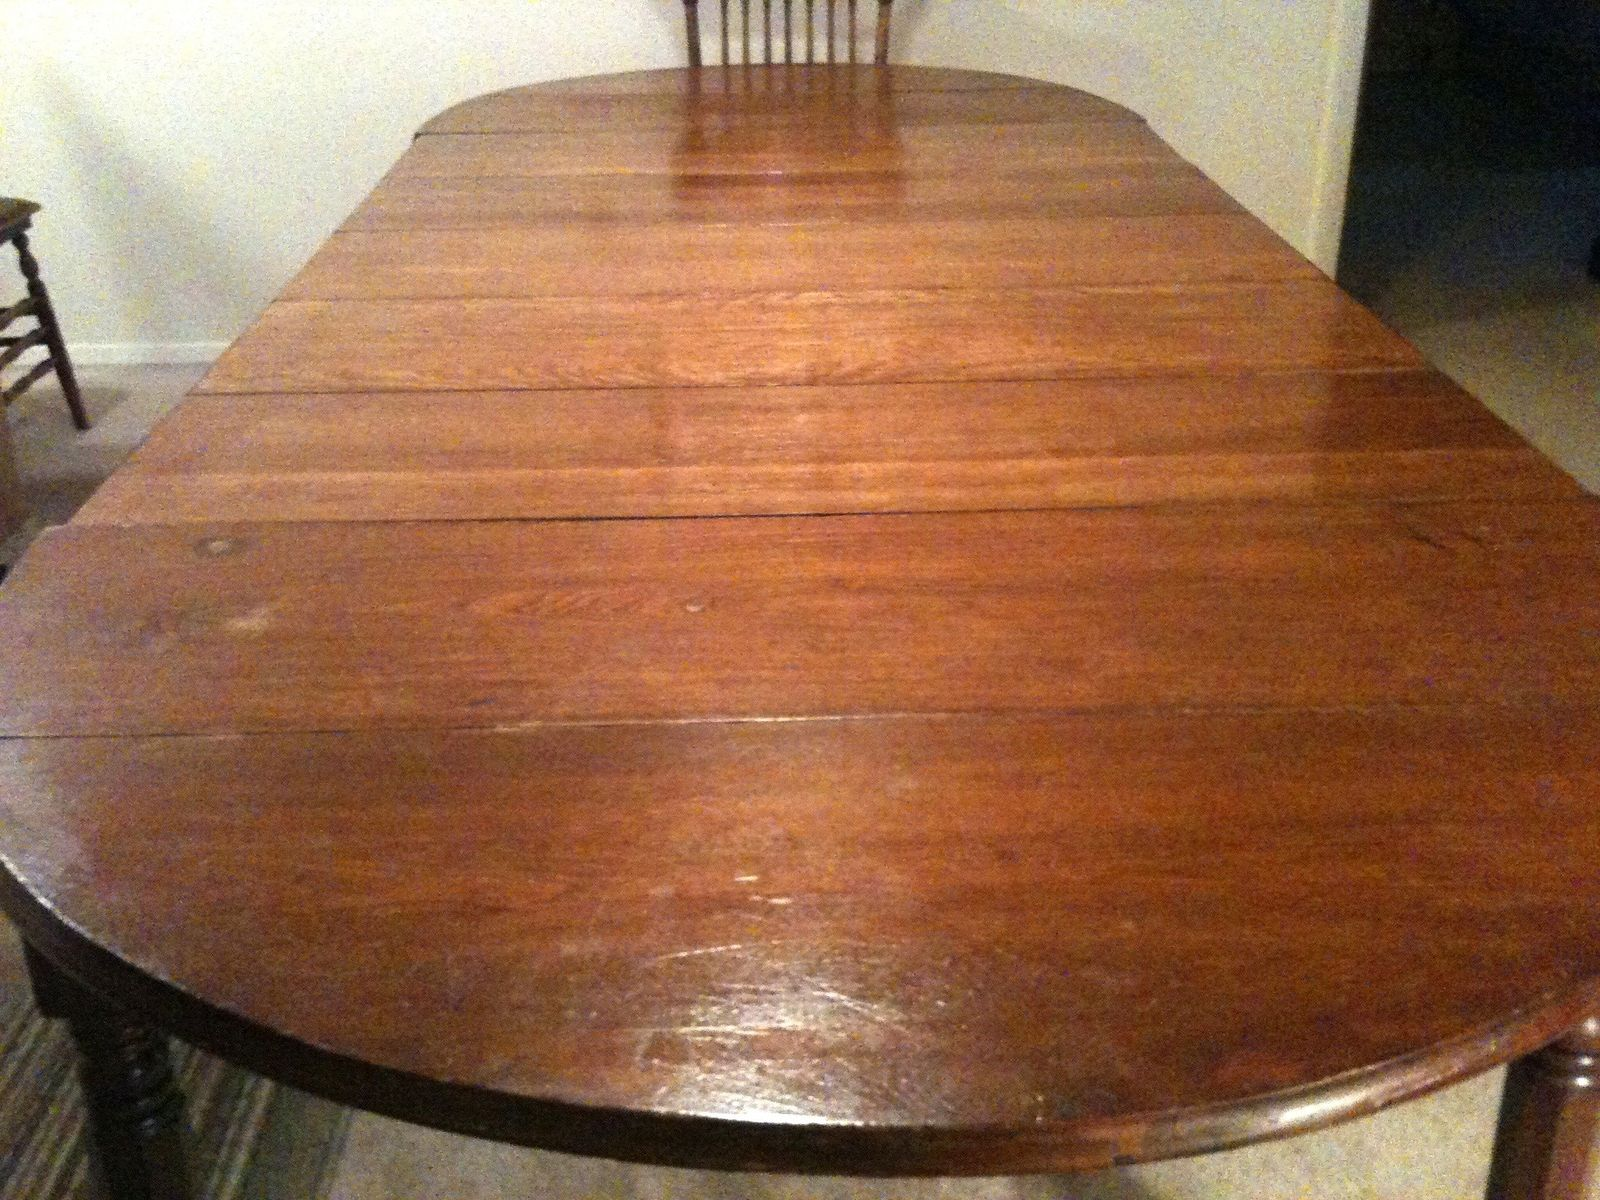 Custom Replacement Of Five 5 Table Leaves To A Family Antique Dining By The Plane Edge LLC